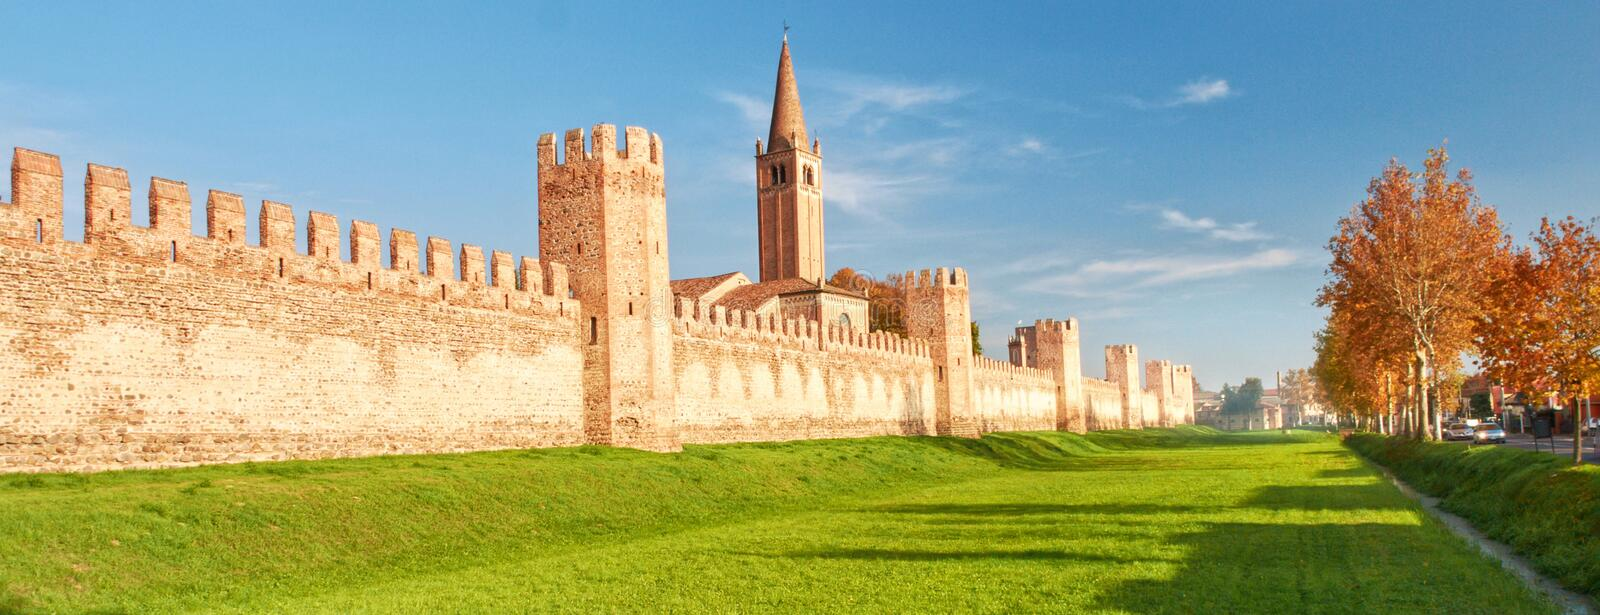 Fortification of small town in north of Italy Montagnana. Fortification of the small town in the north of Italy Montagnana Near Verona stock photo